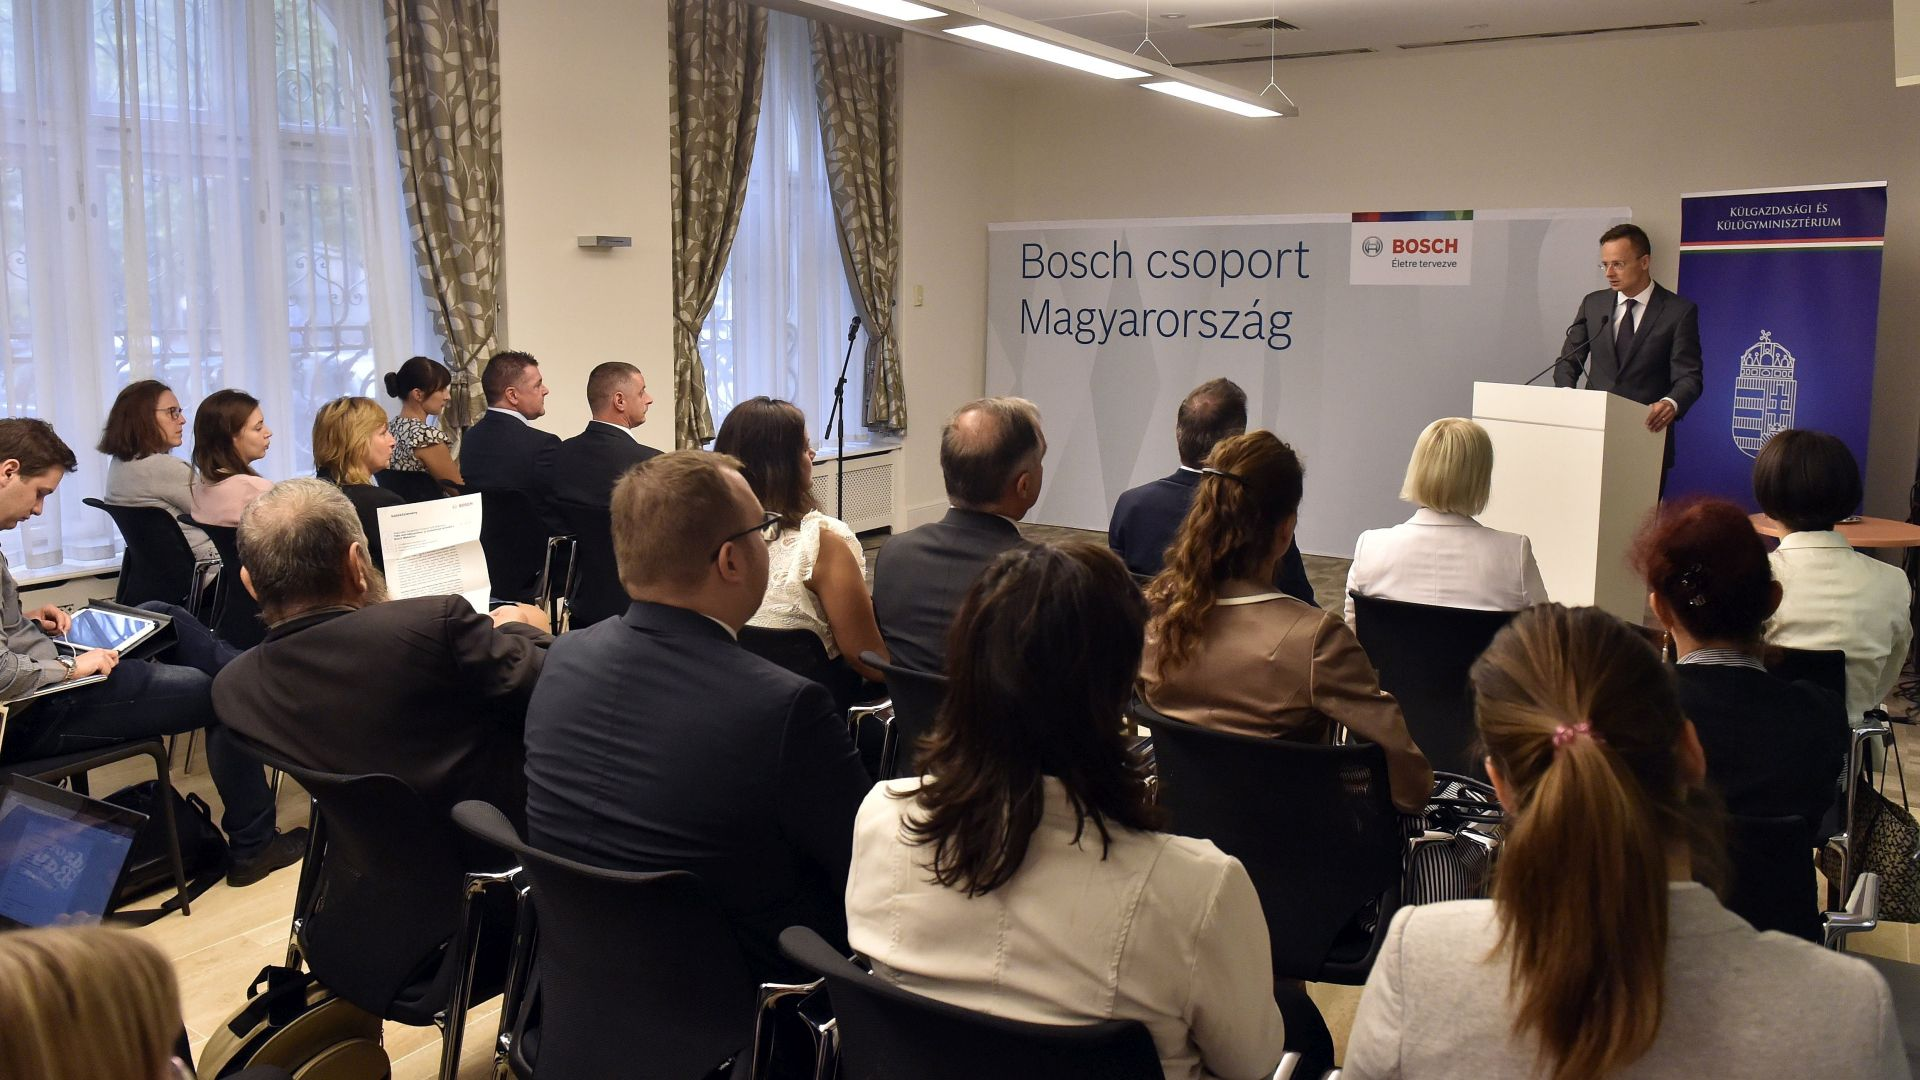 The logistics and service centre of Bosch in Miskolc is at full speed